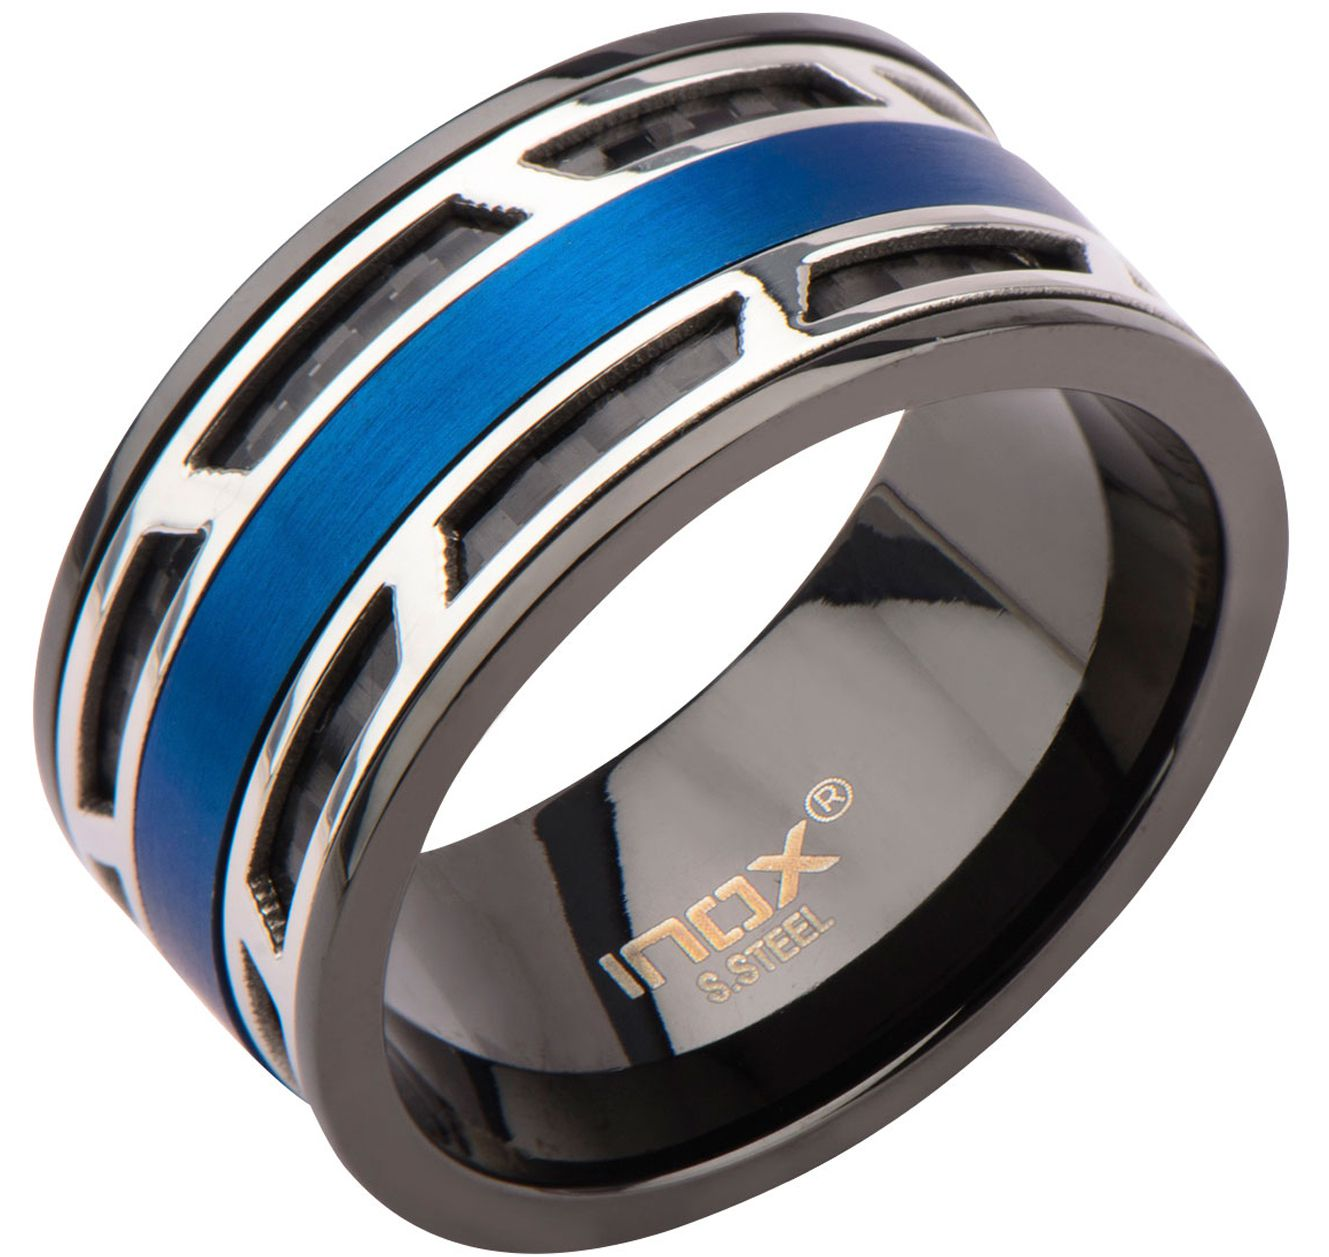 Inox Jewelry Silver, Blue and Black Stainless Steel with Inlaid Carbon Fiber Ring